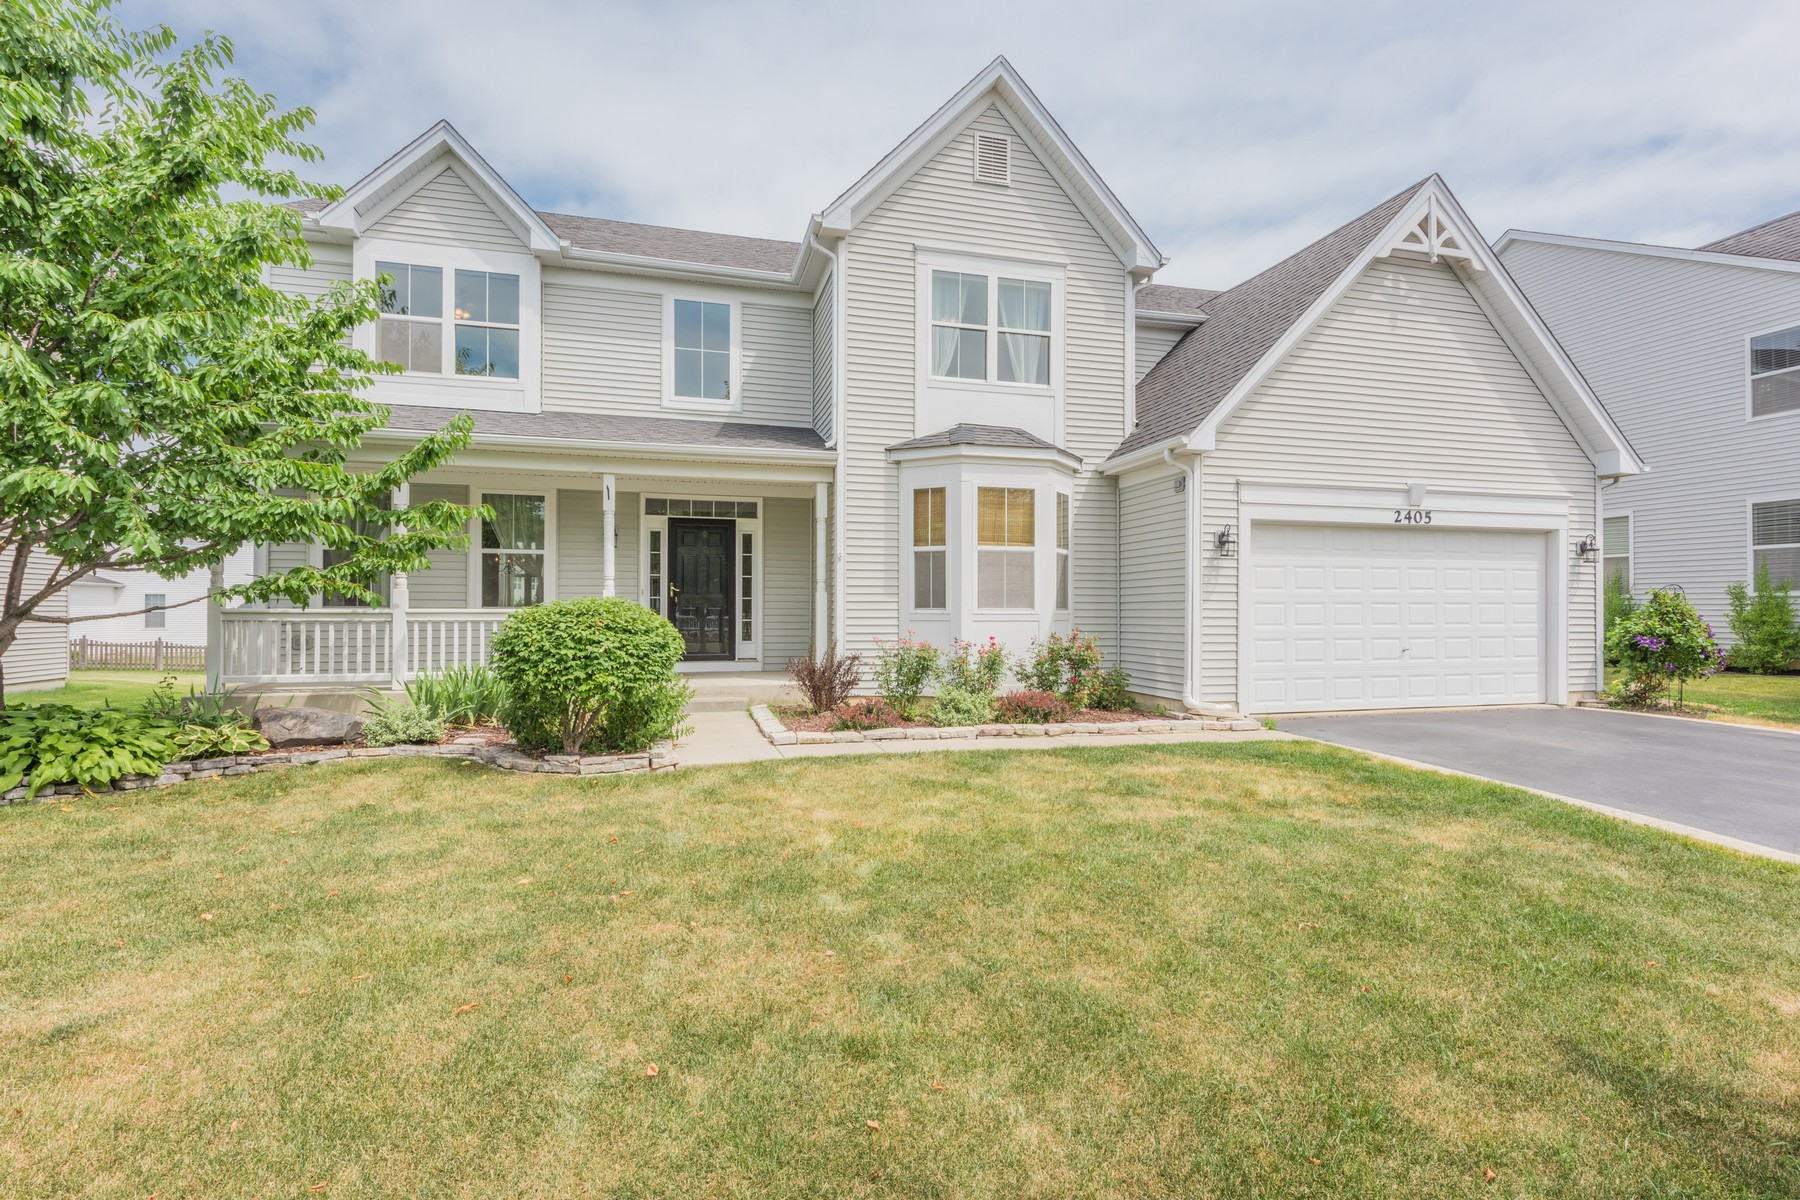 Single Family Home for Sale at Freshly Updated Home 2405 Trailside Lane Wauconda, Illinois, 60084 United States